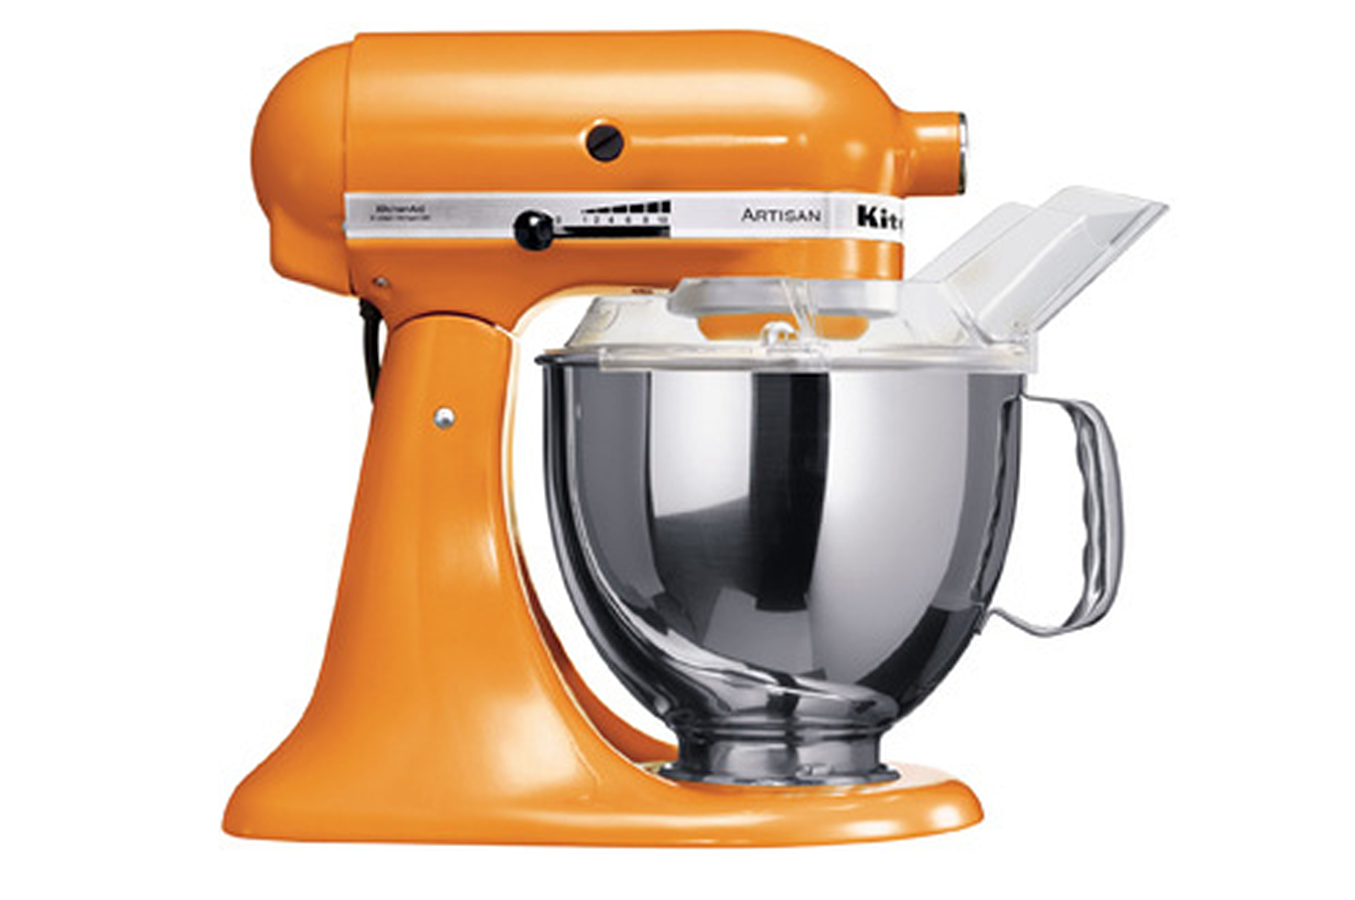 robot patissier kitchenaid 5ksm150 psetg orange 5ksm150. Black Bedroom Furniture Sets. Home Design Ideas